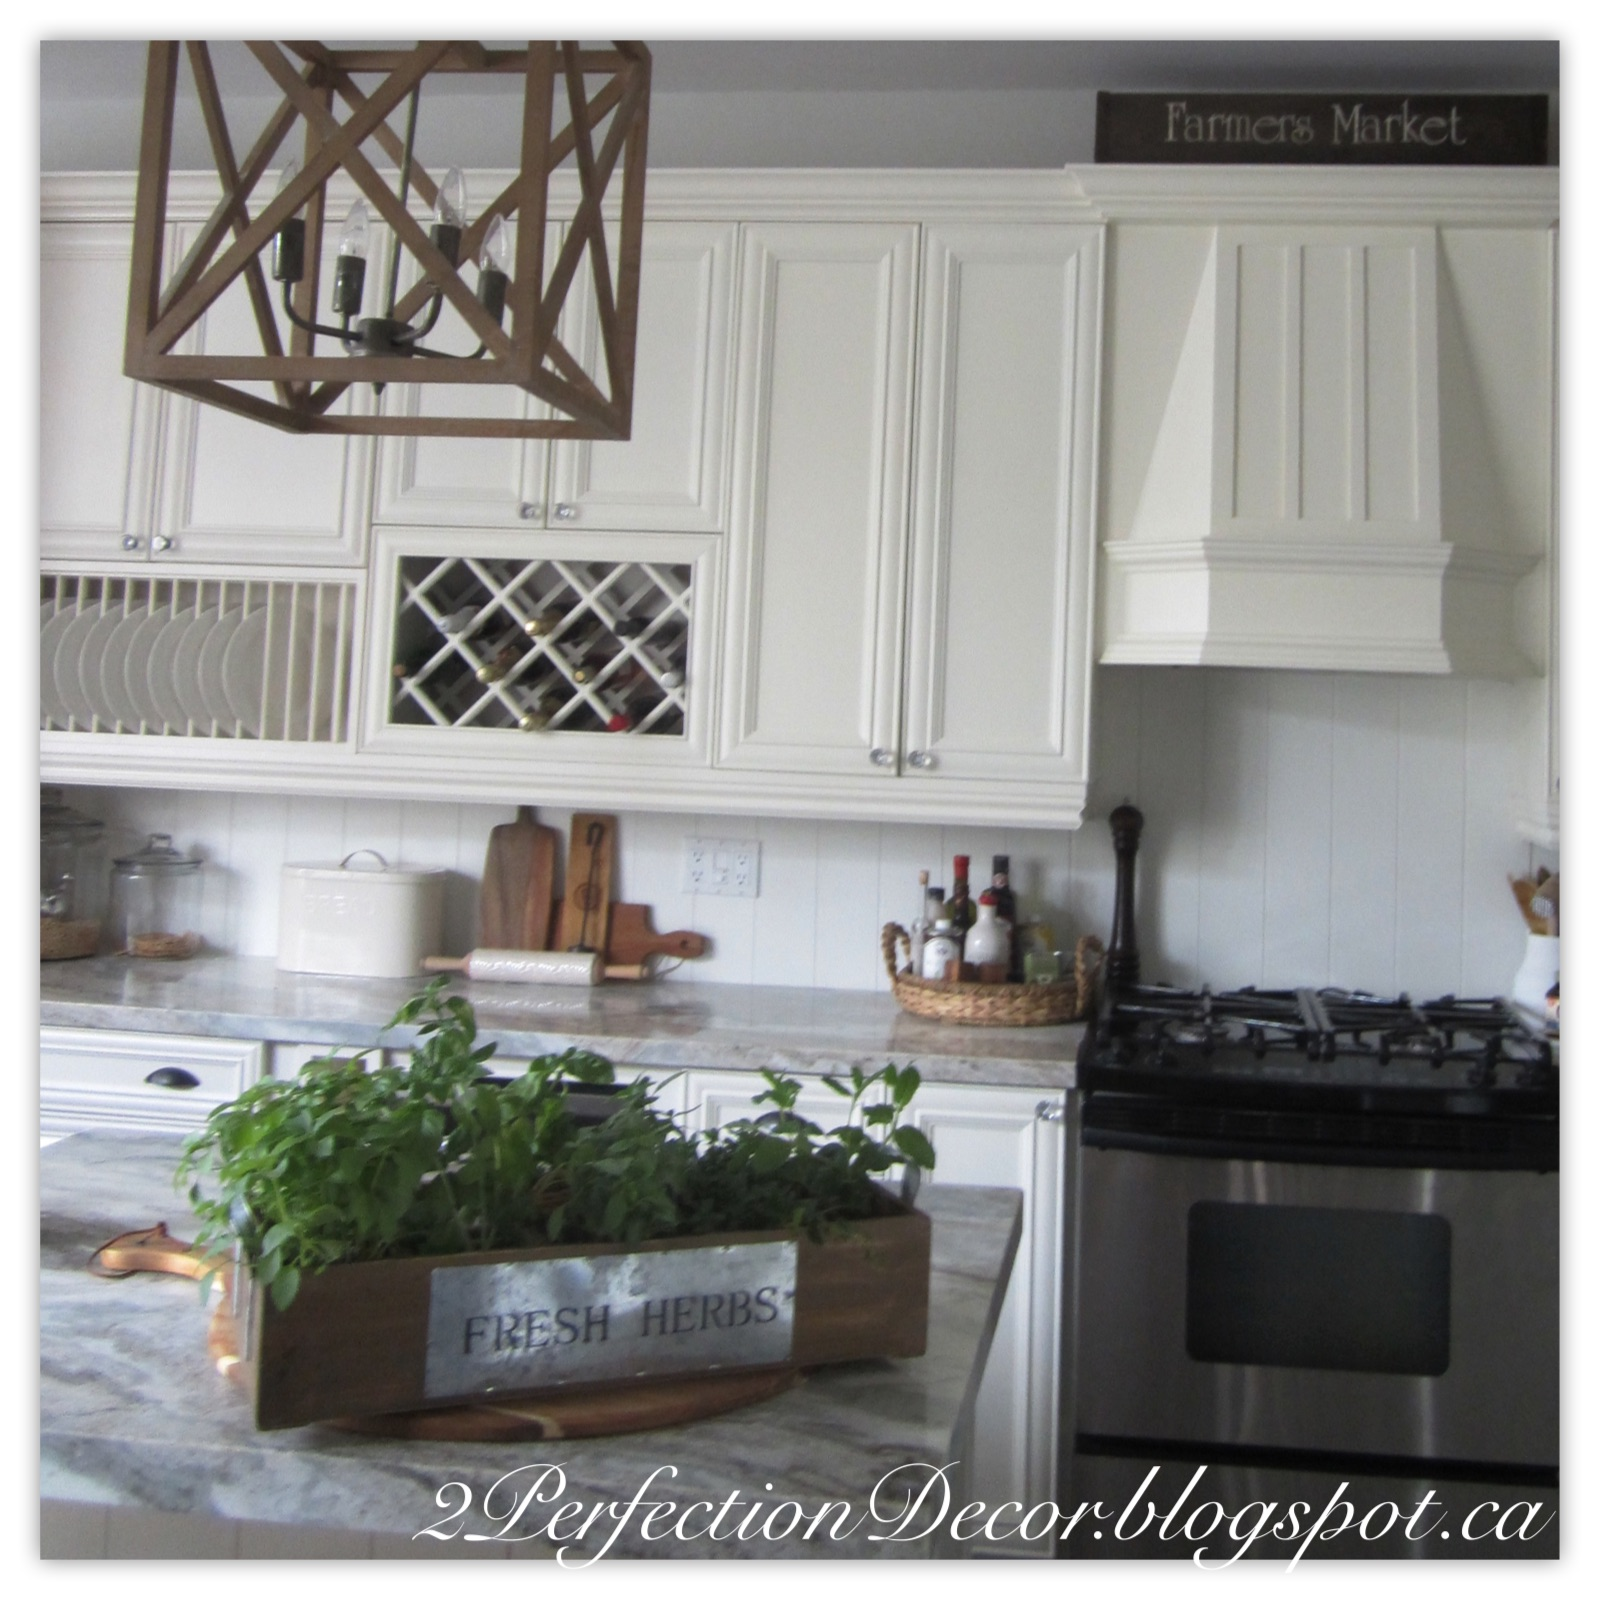 Http 2perfectiondecor Blogspot Ca 2016 06 New Herb Garden For Our Kitchen Html